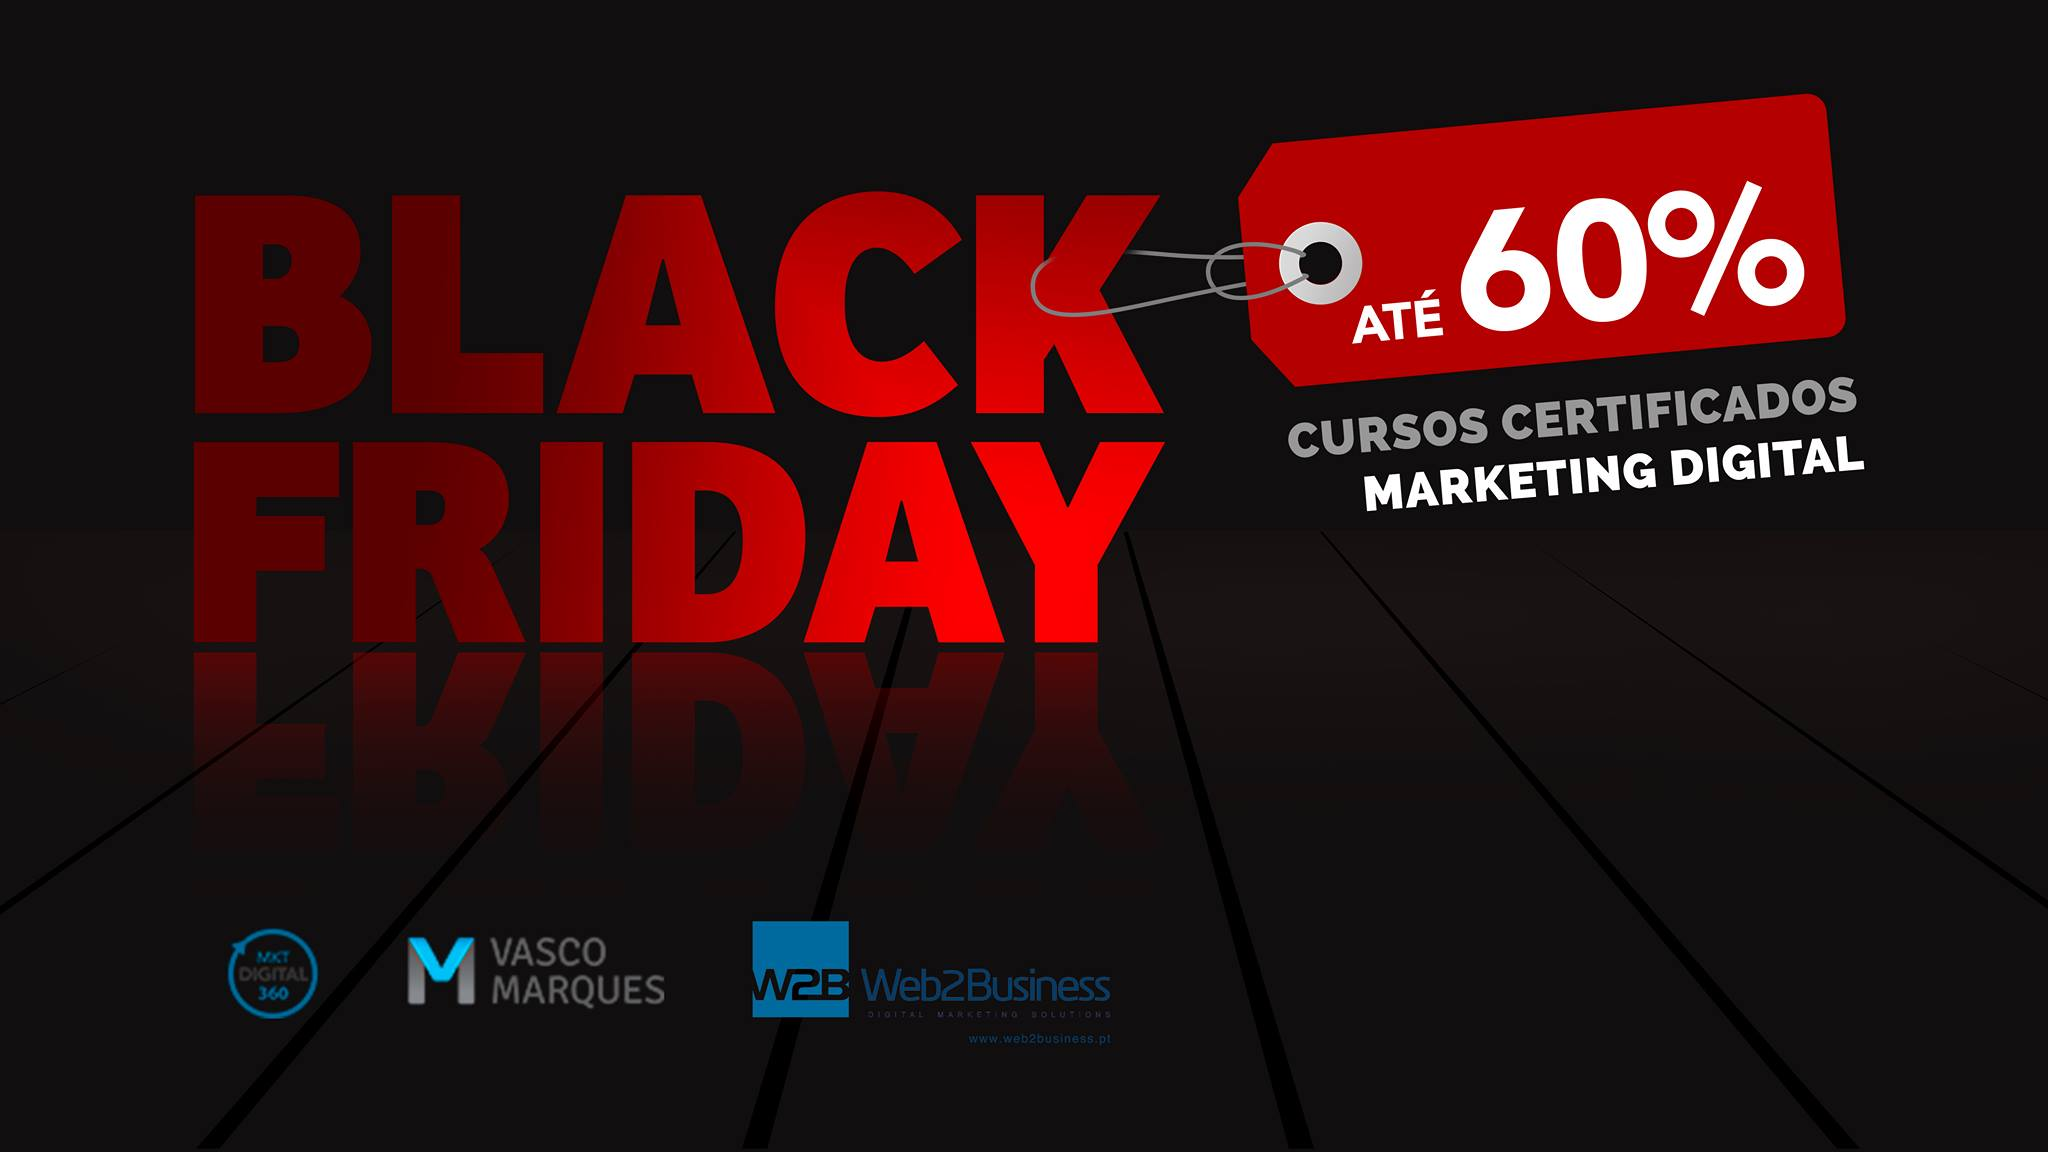 57cba1c40a Black Friday - WeB2Business